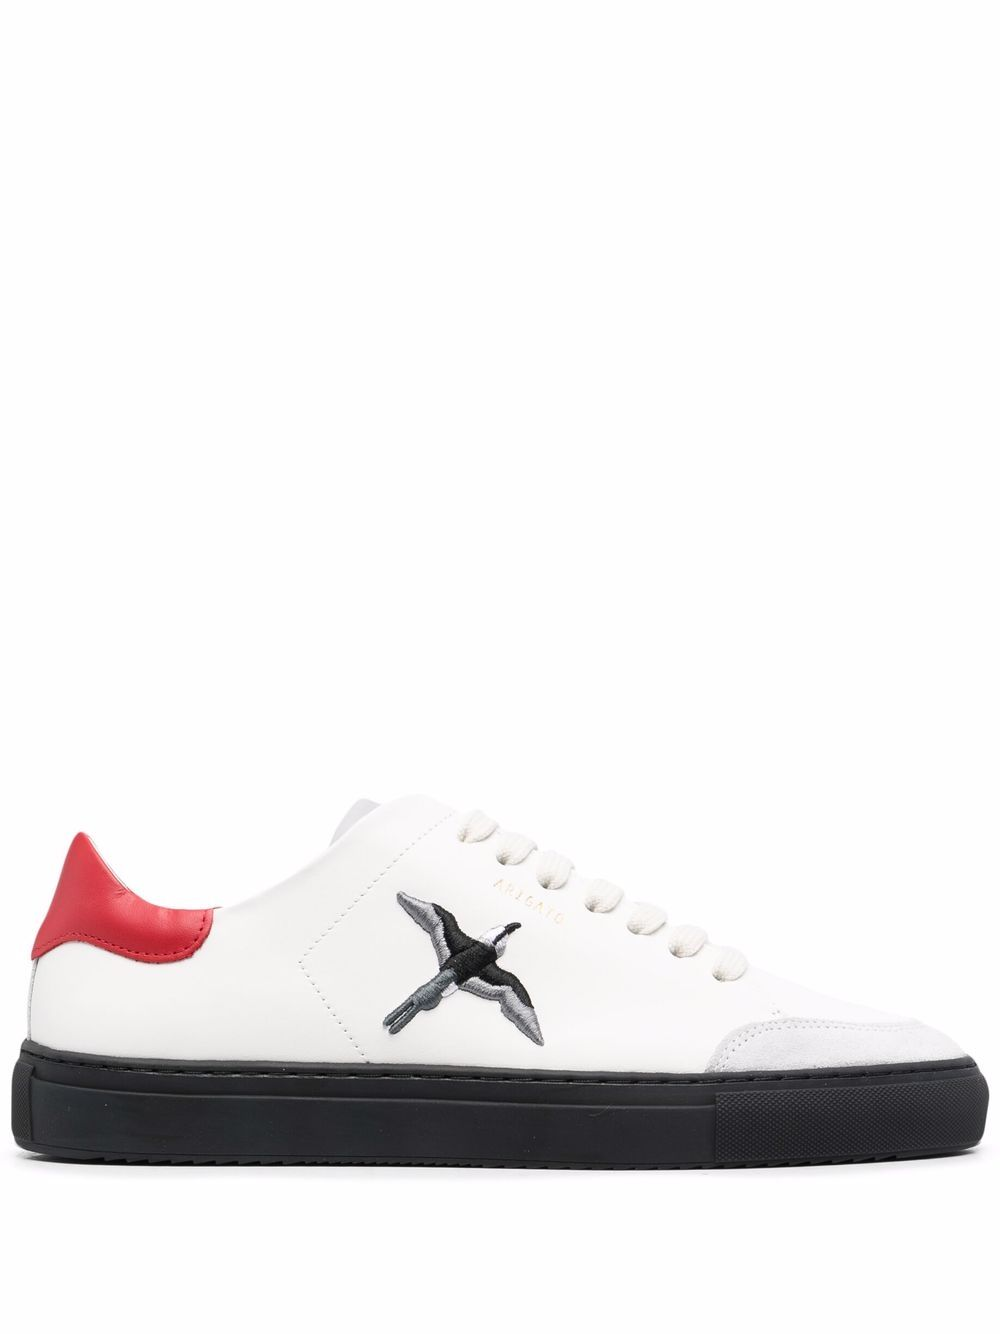 Axel Arigato Sneakers White/red